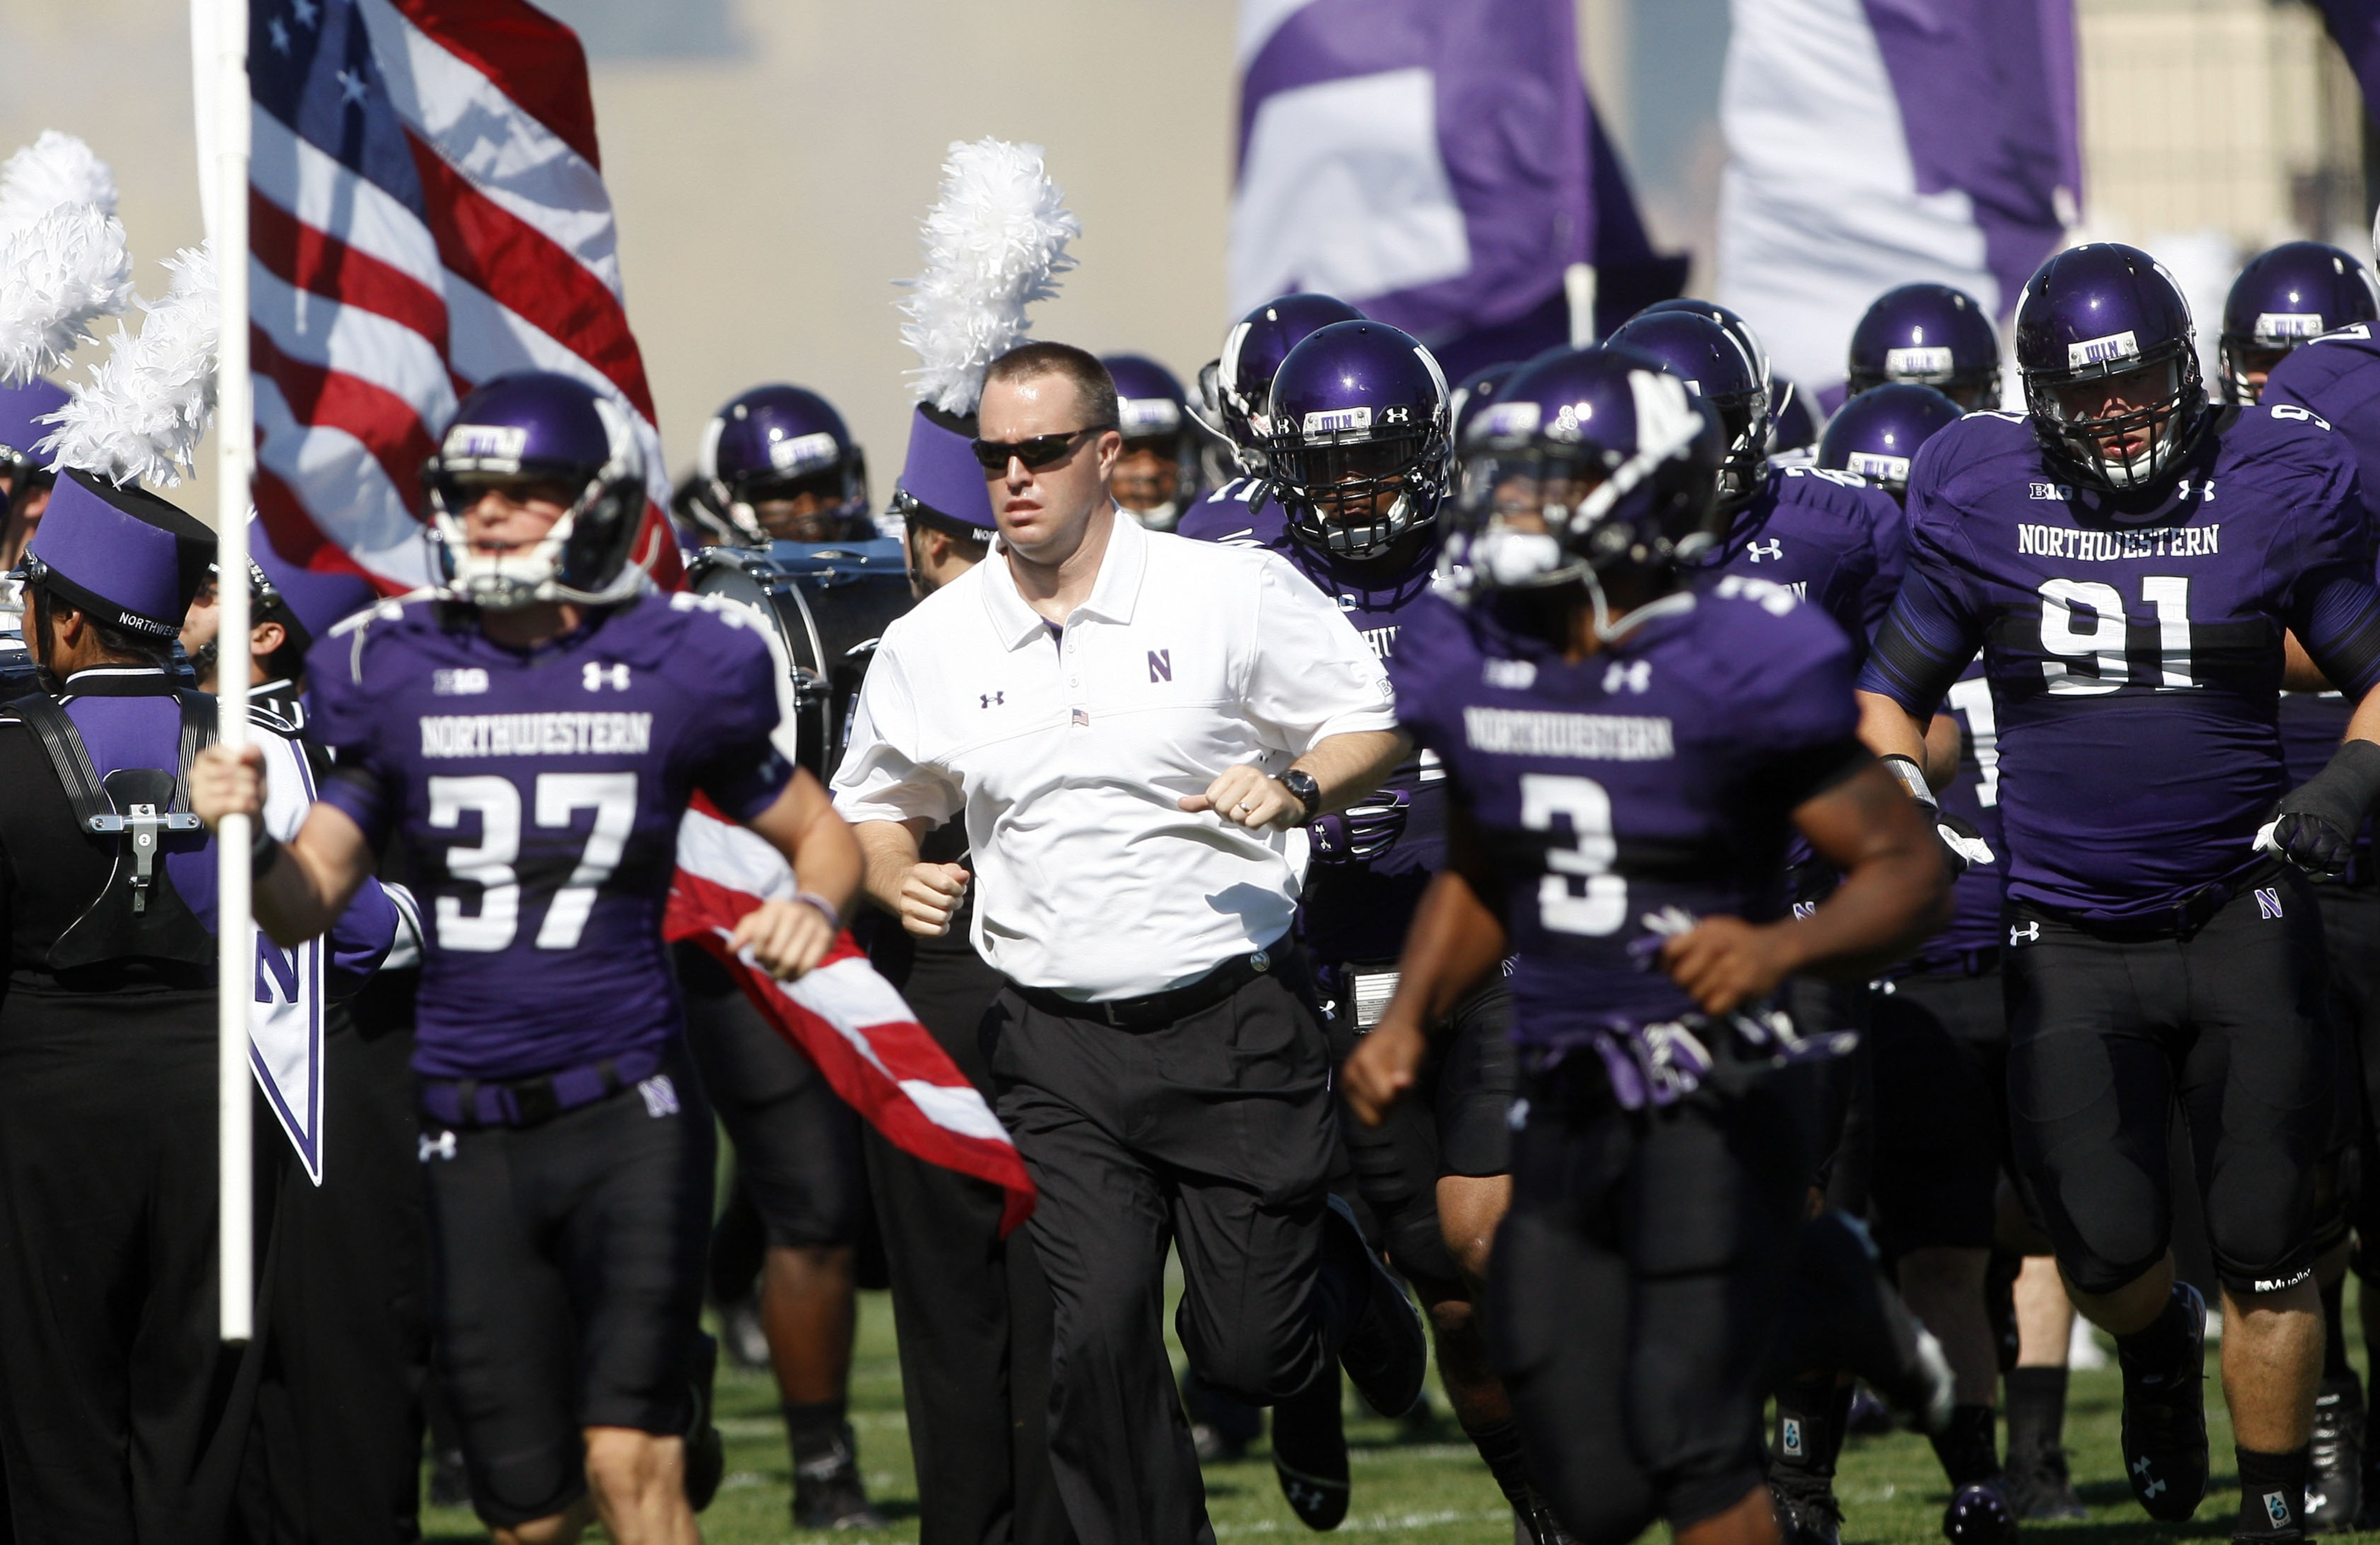 Here comes Northwestern - get in the way at your own risk.